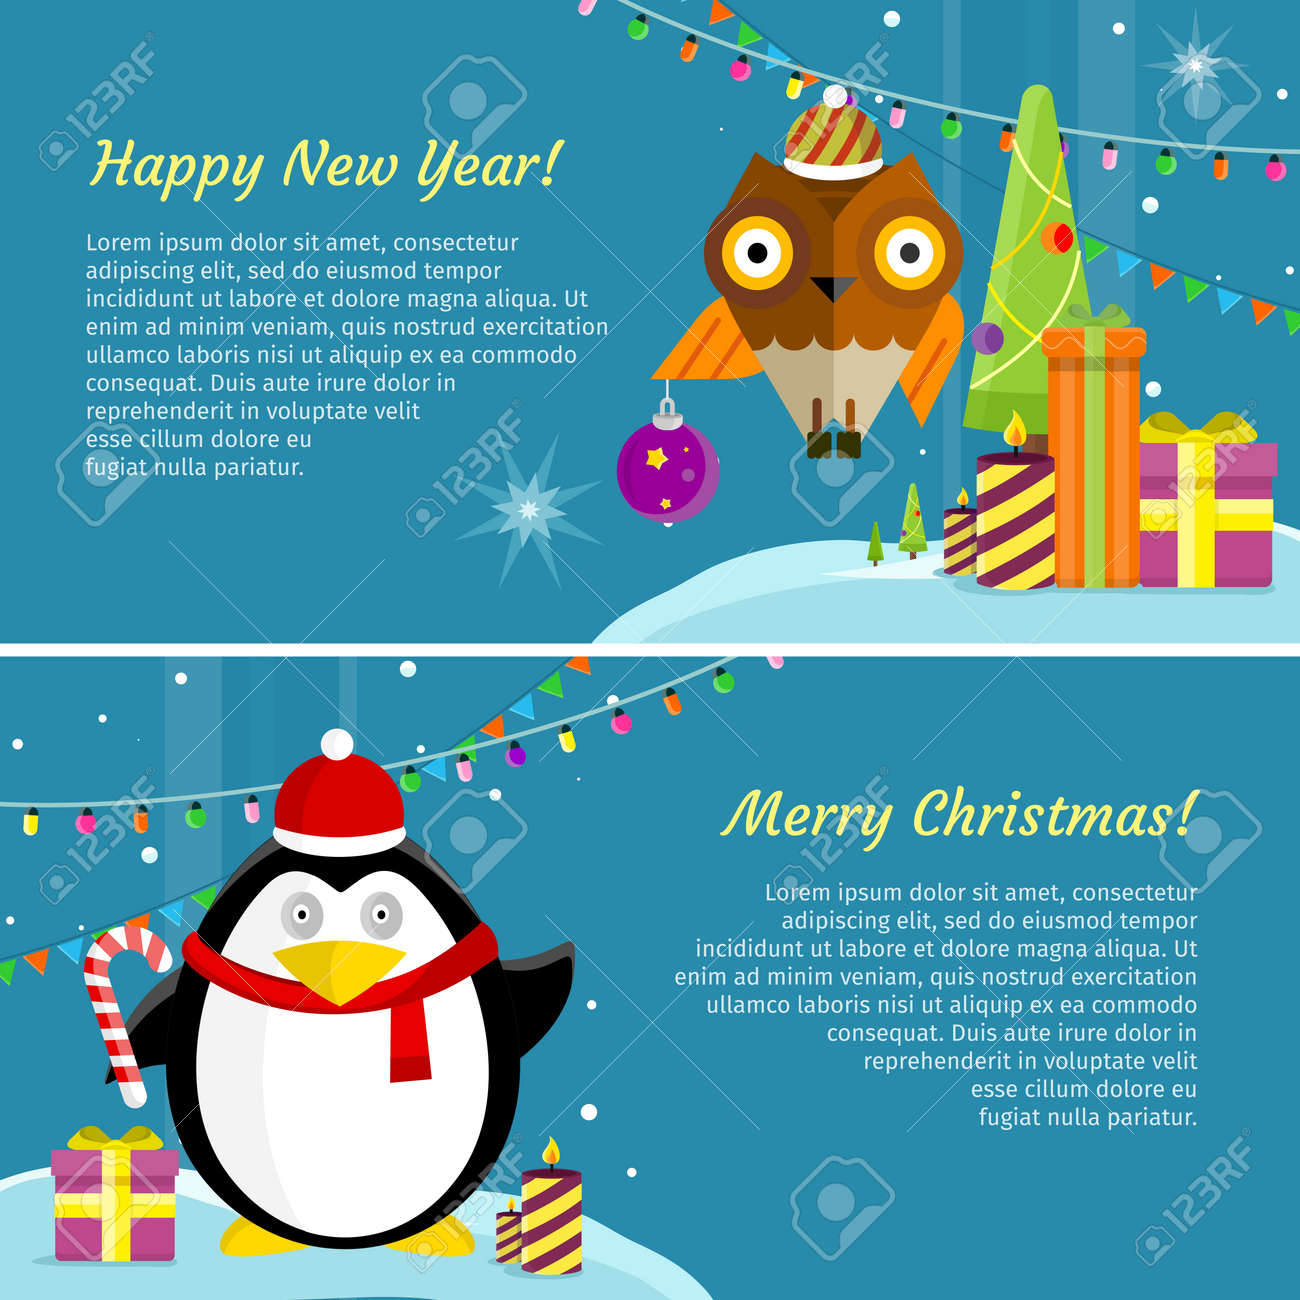 Winter Holiday Banners Coaching Student Banners